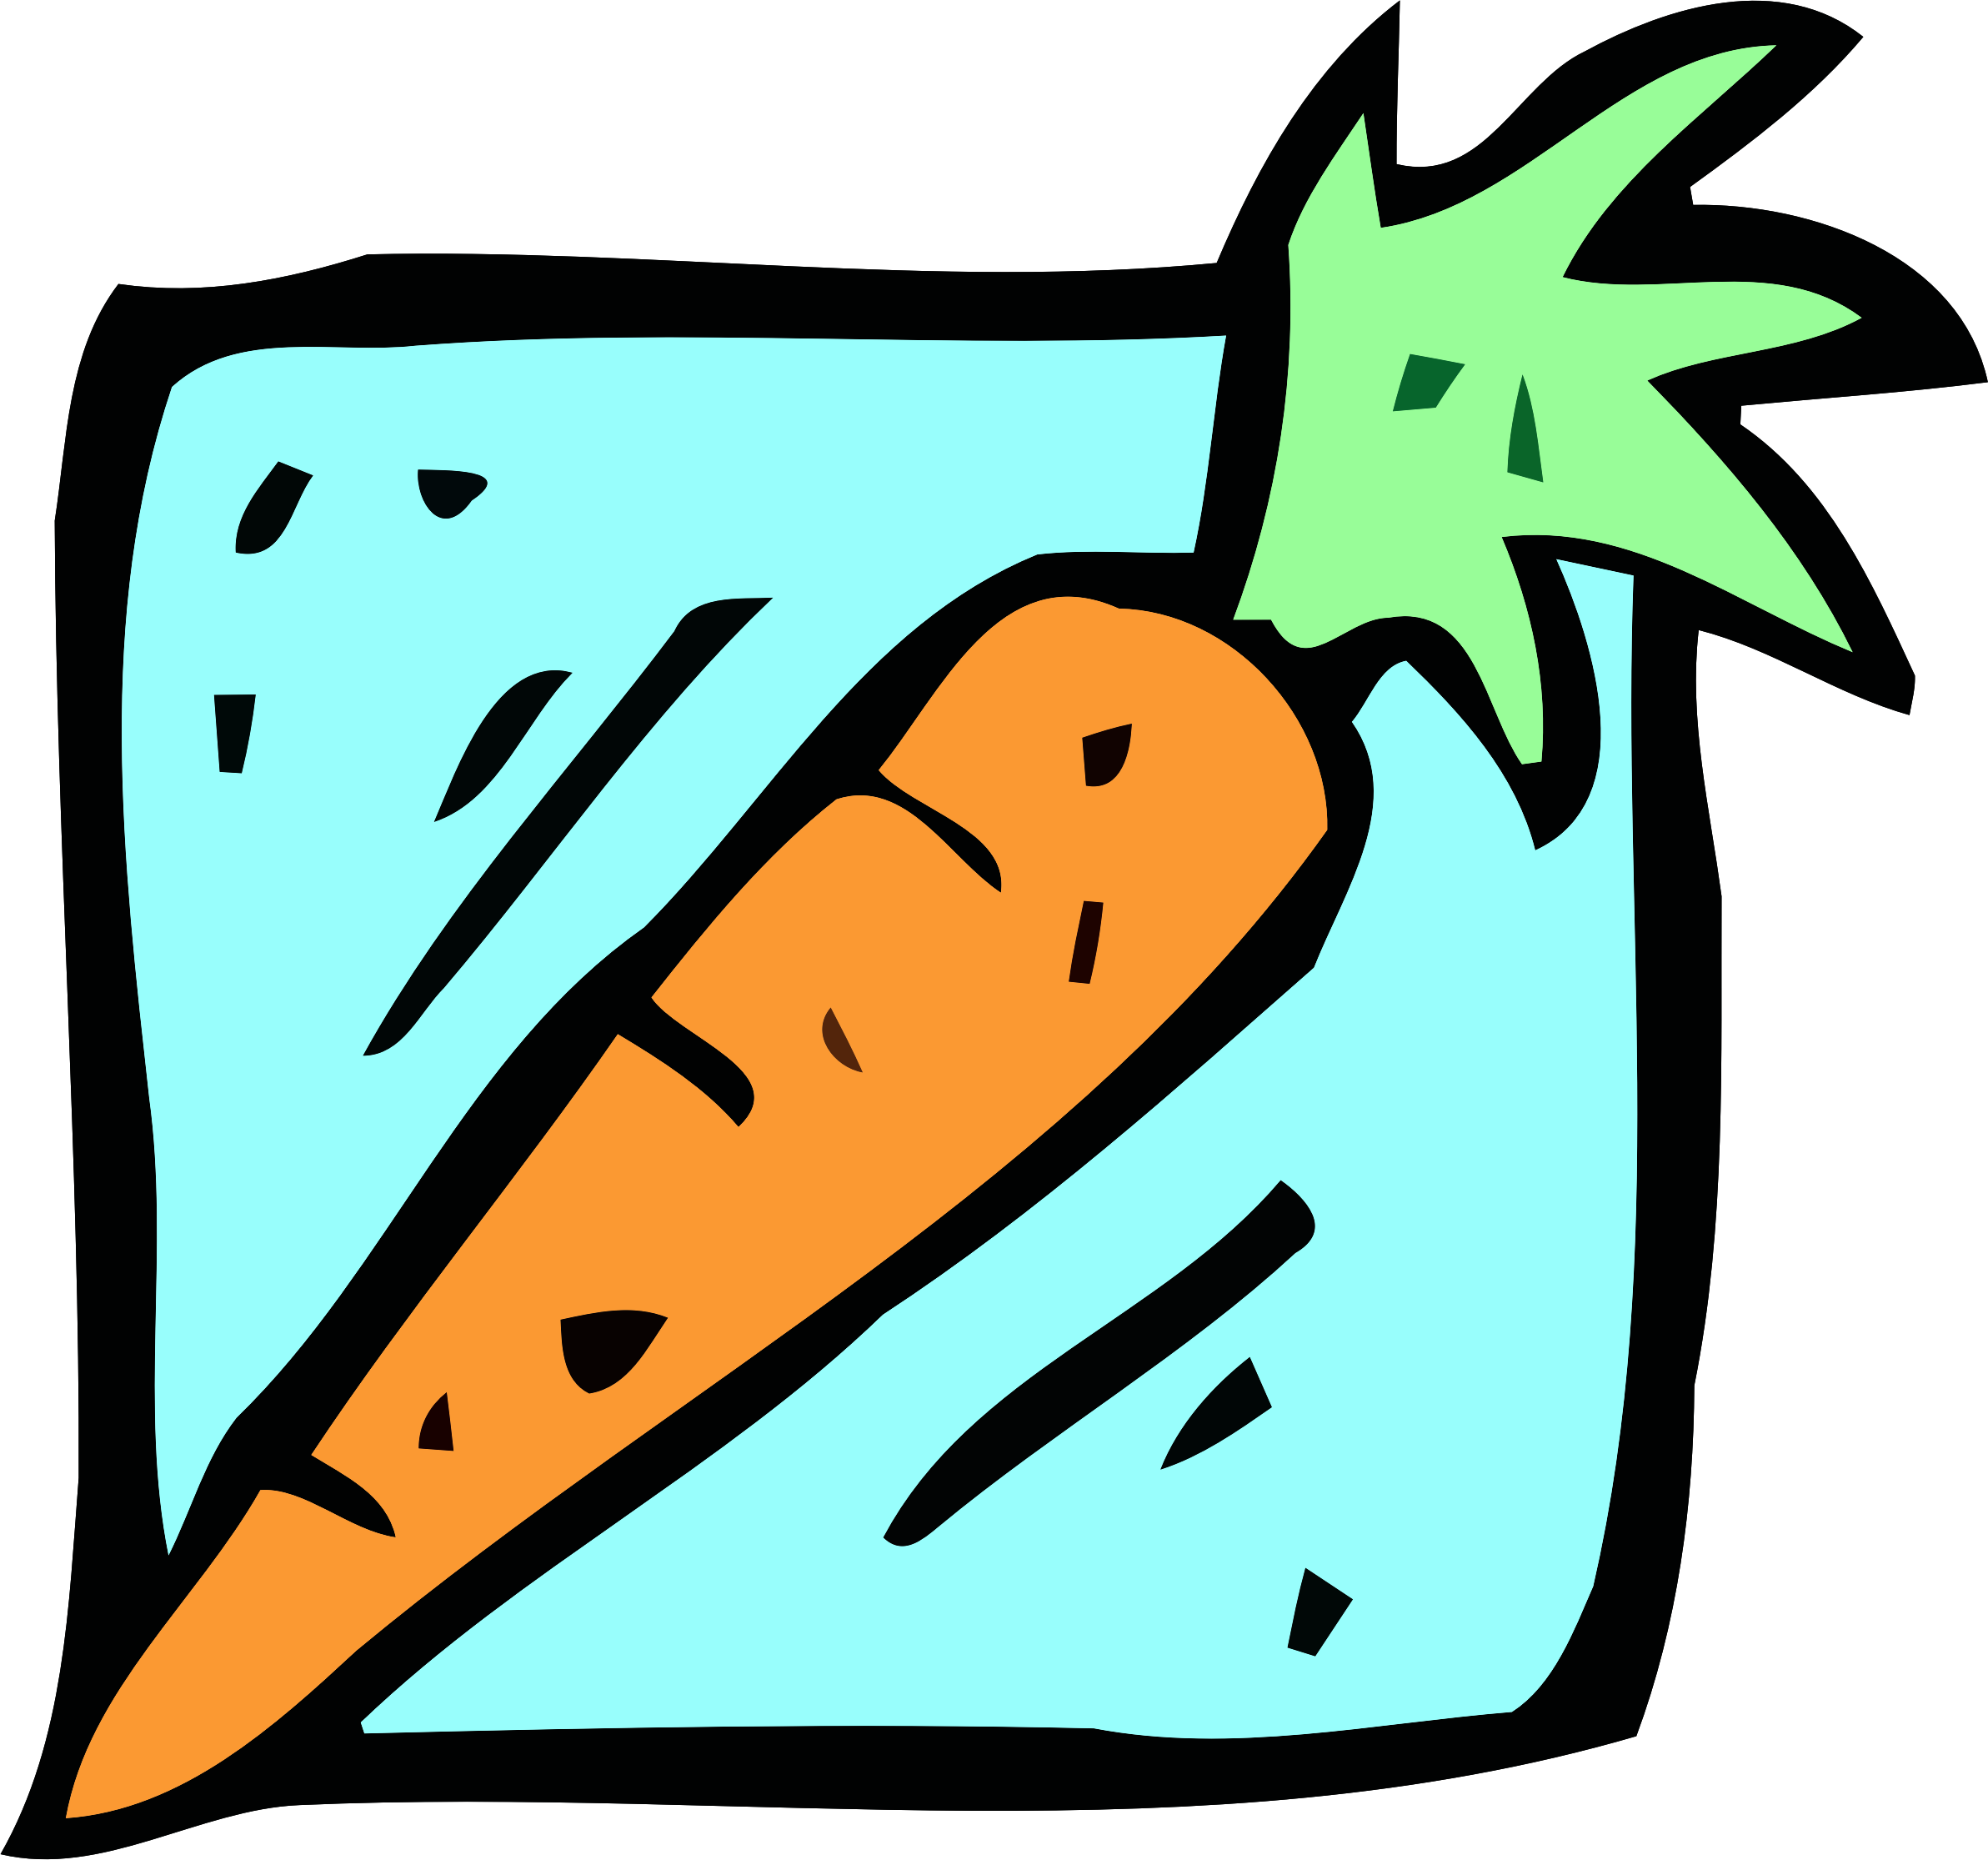 Food and drink icon. Foods clipart carrot